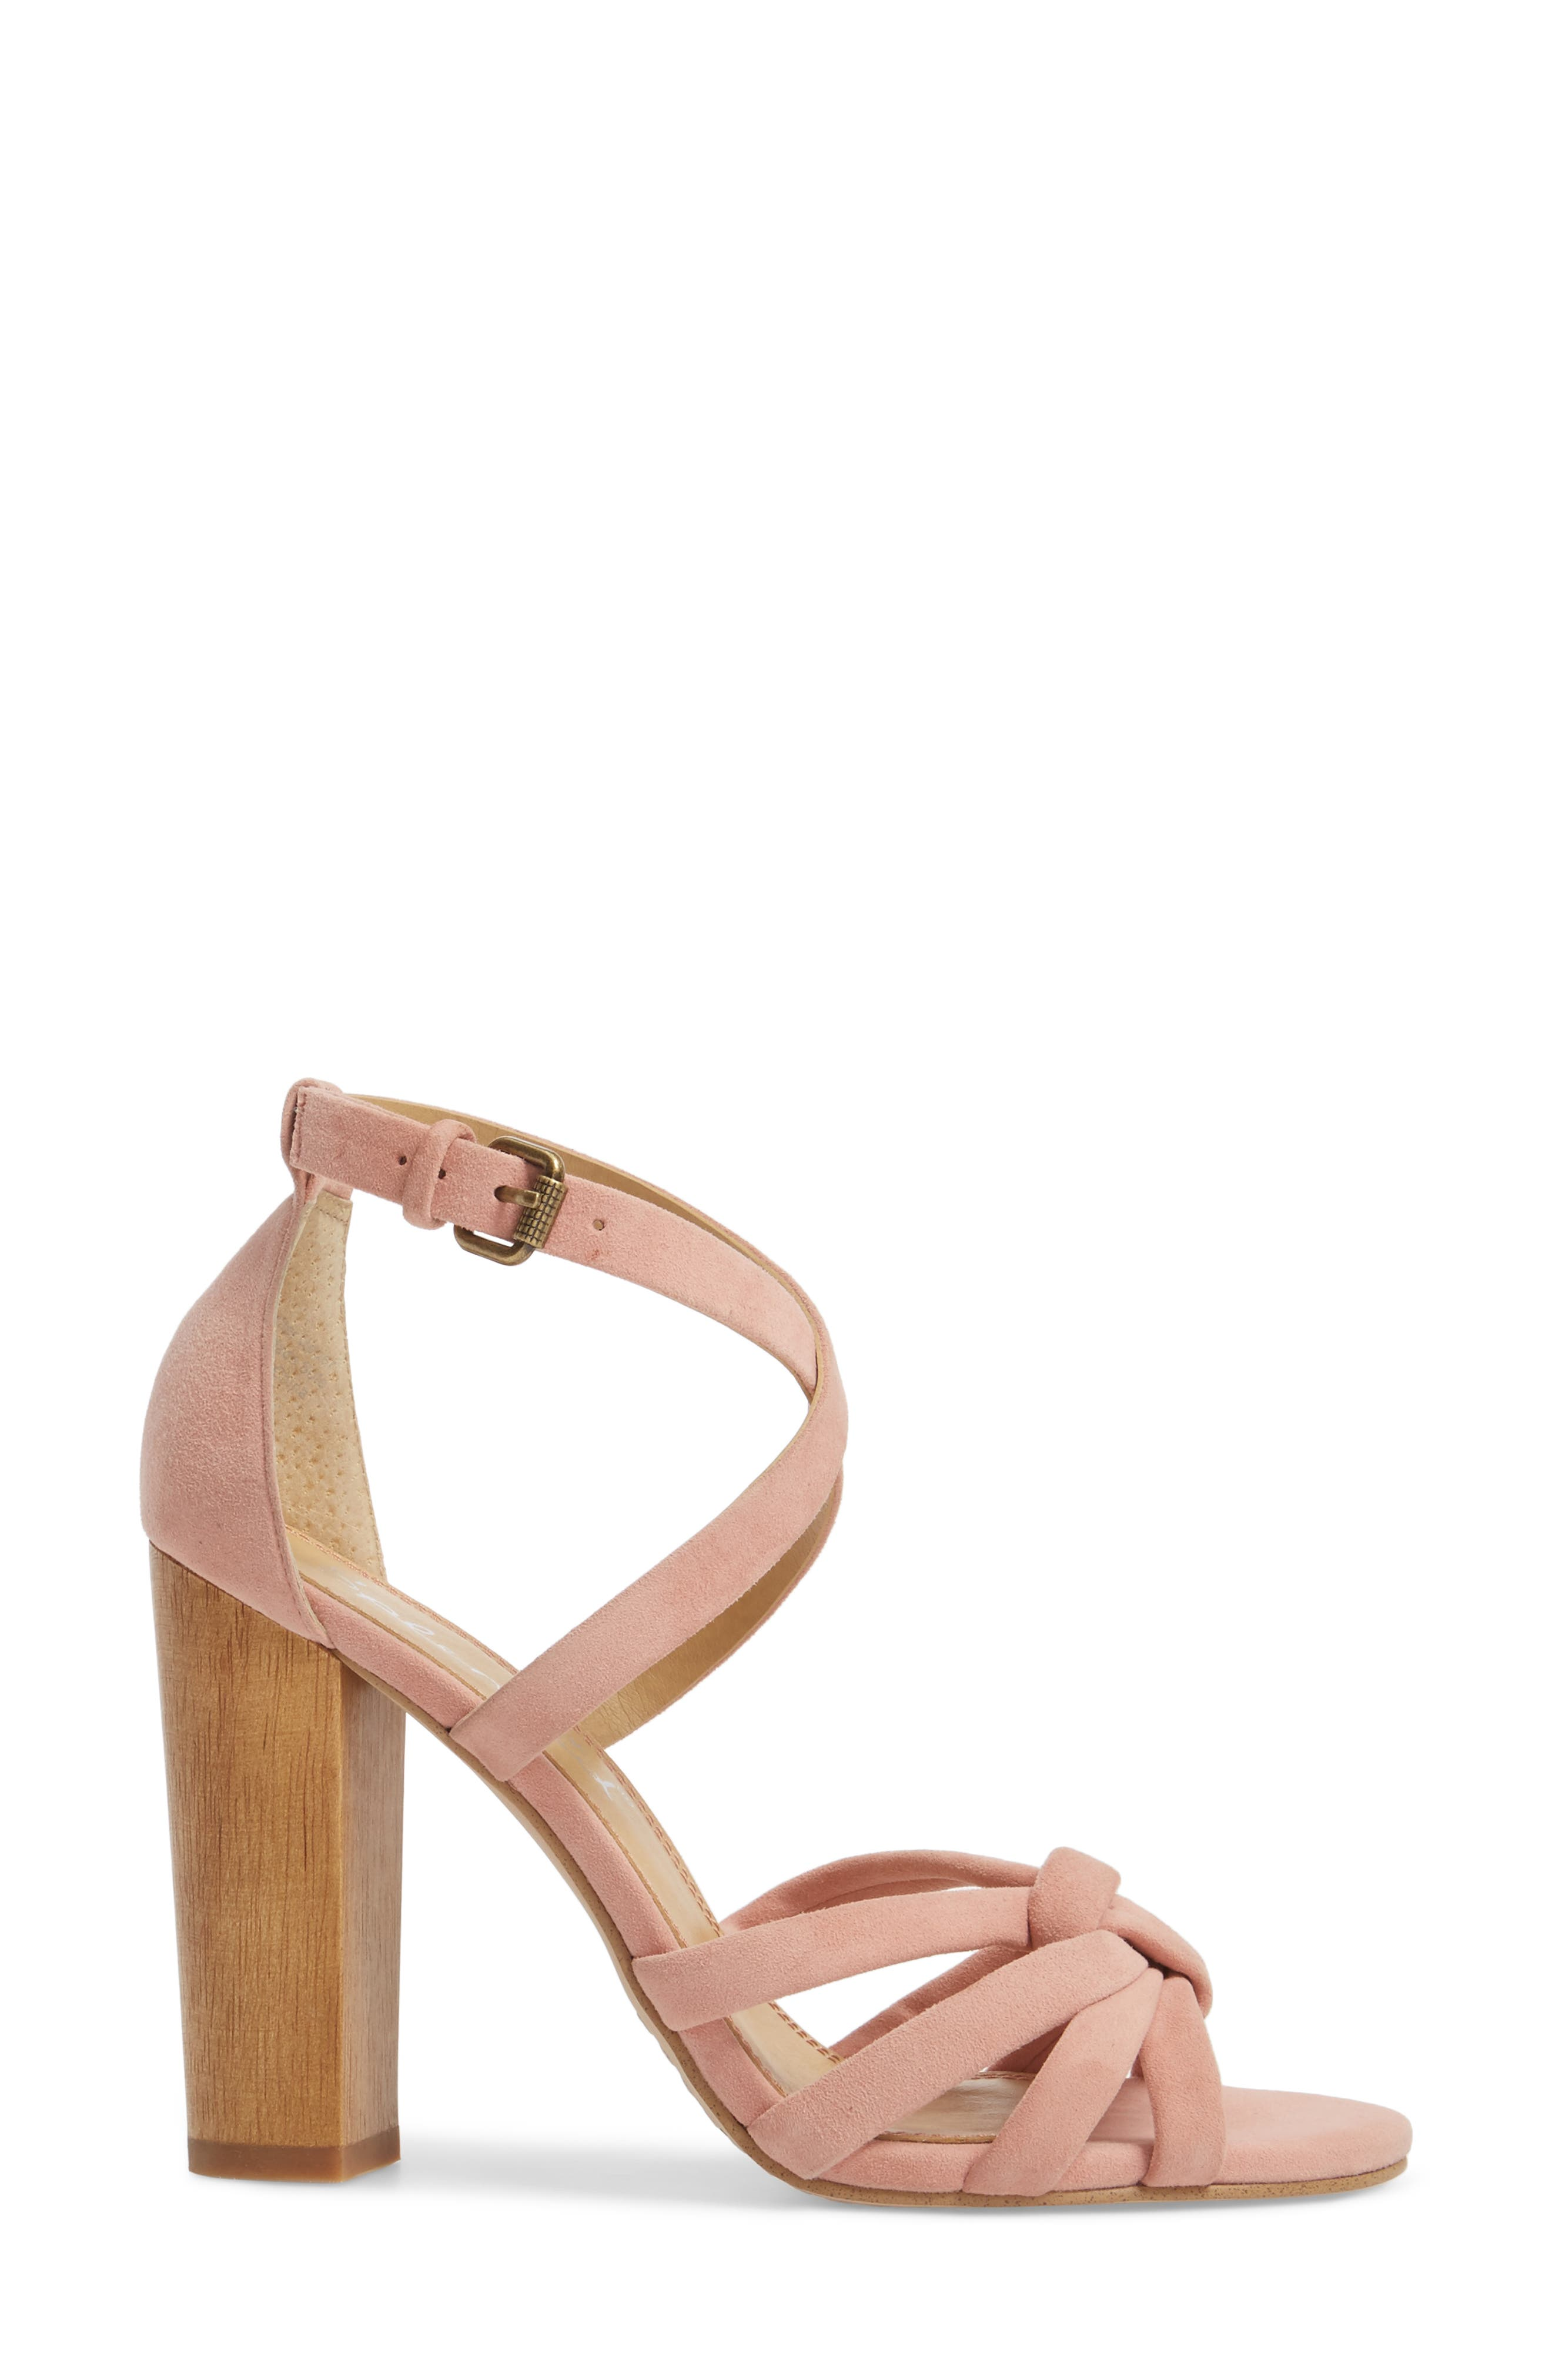 Faris Block Heel Sandal,                             Alternate thumbnail 3, color,                             Blush Suede